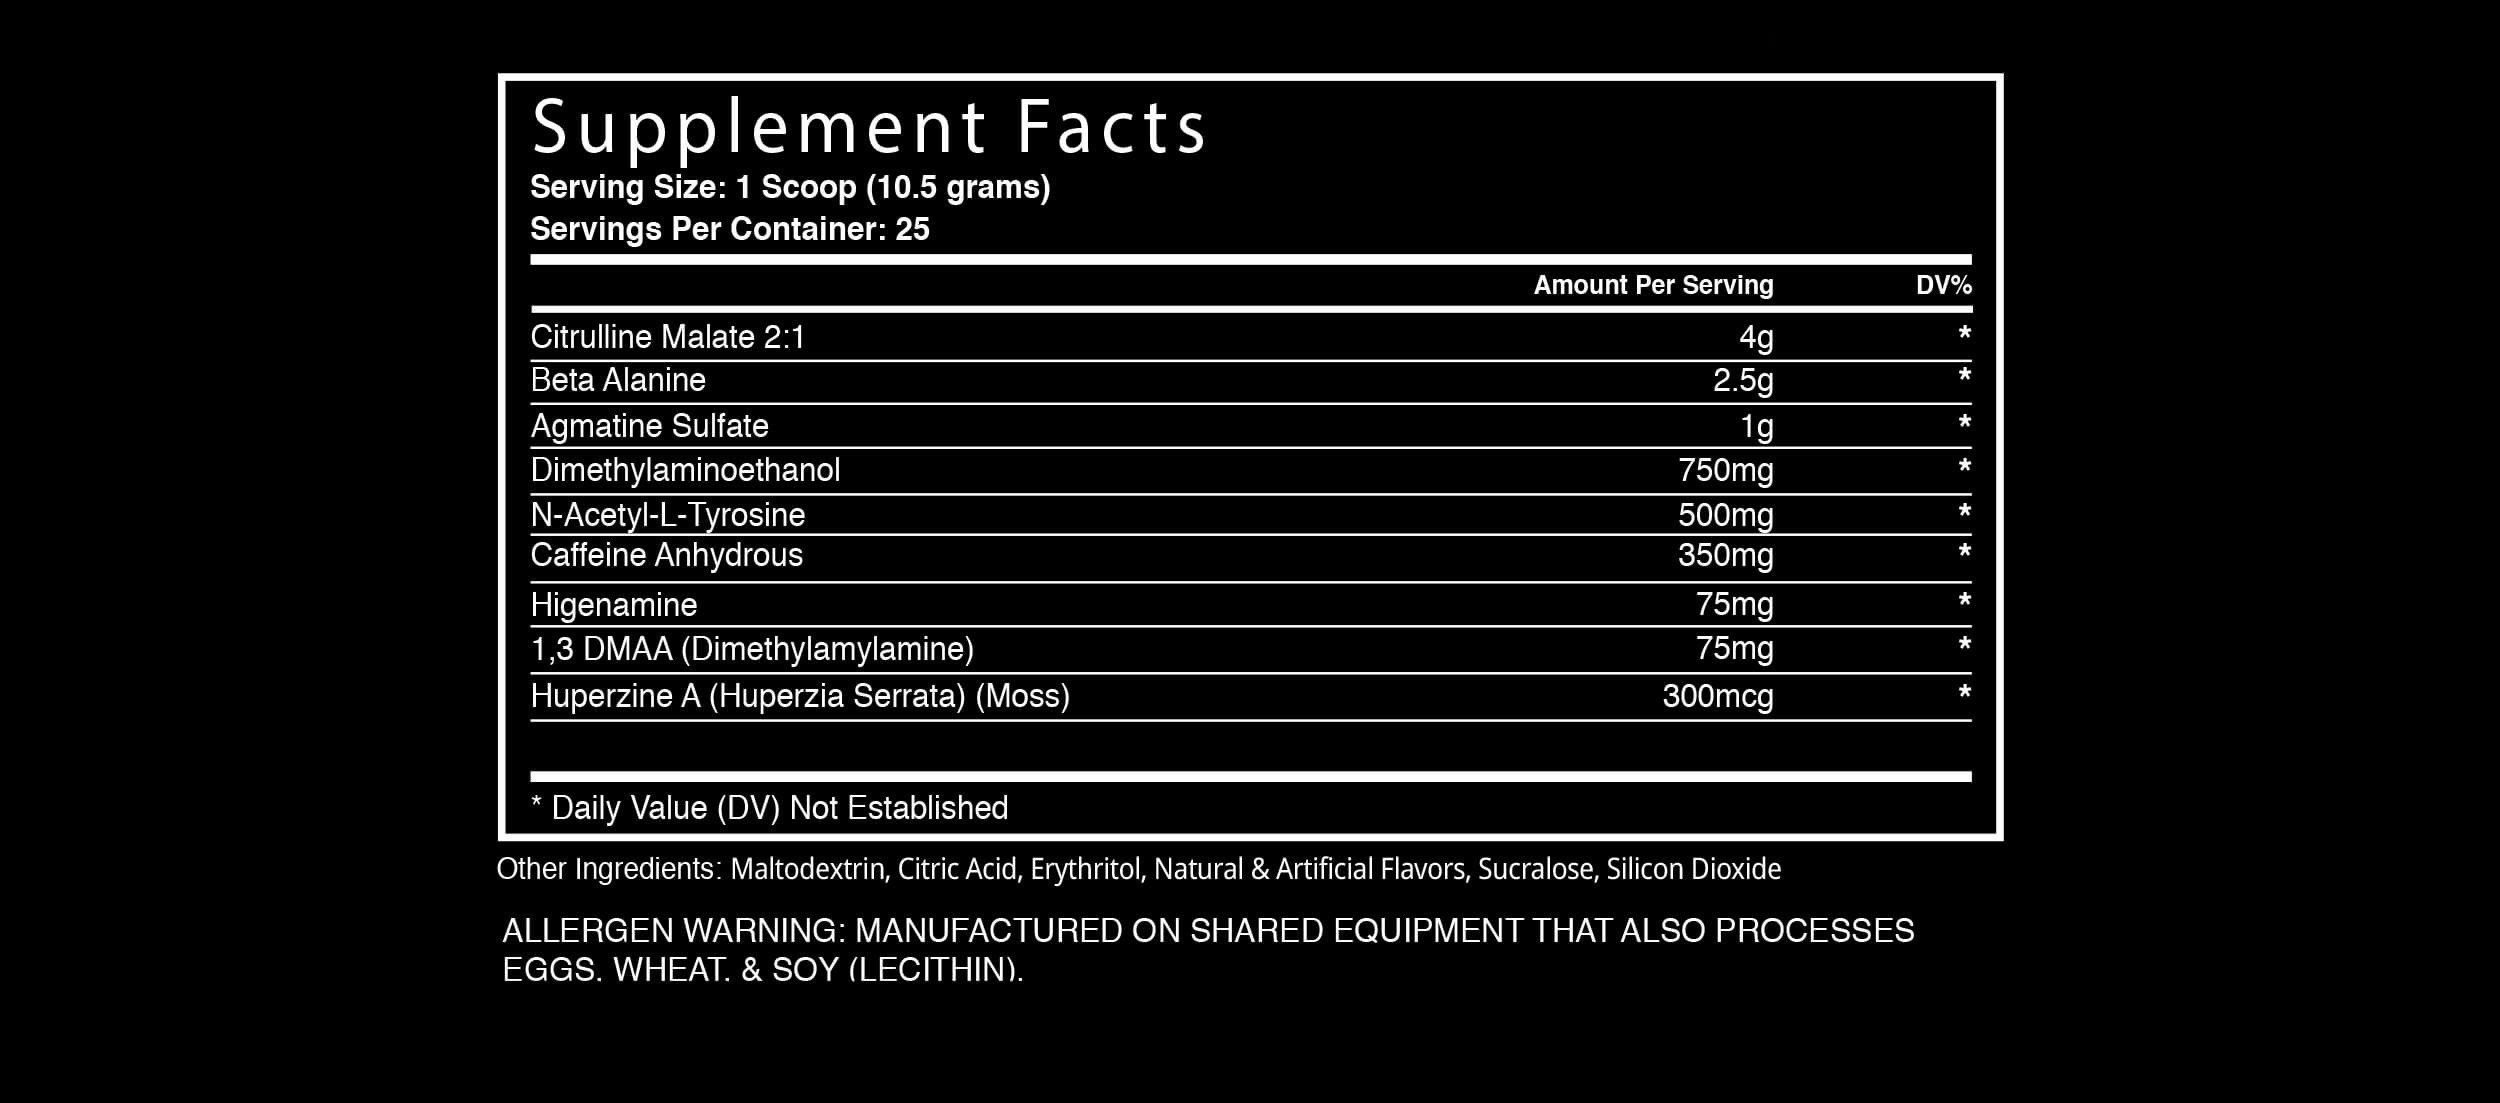 dustextreme-dmaa-pre-workout-supplement-facts.jpg